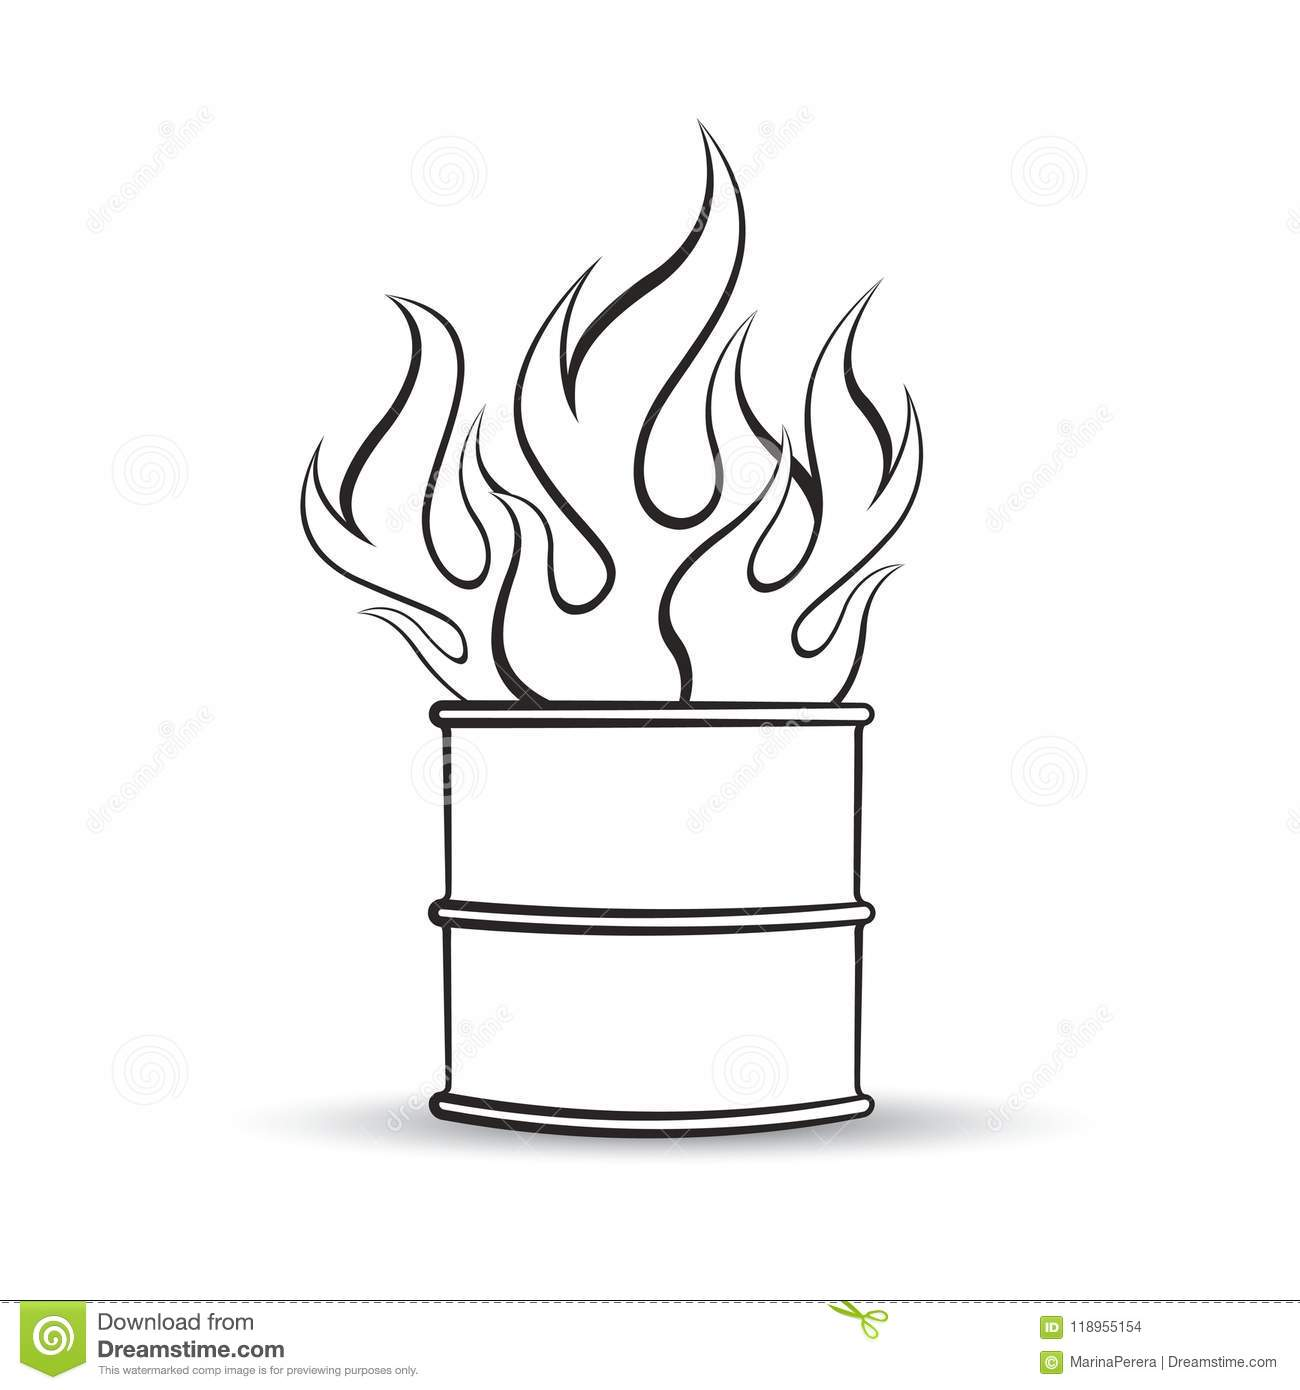 Barrel With Fire In Black Outline Stock Vector